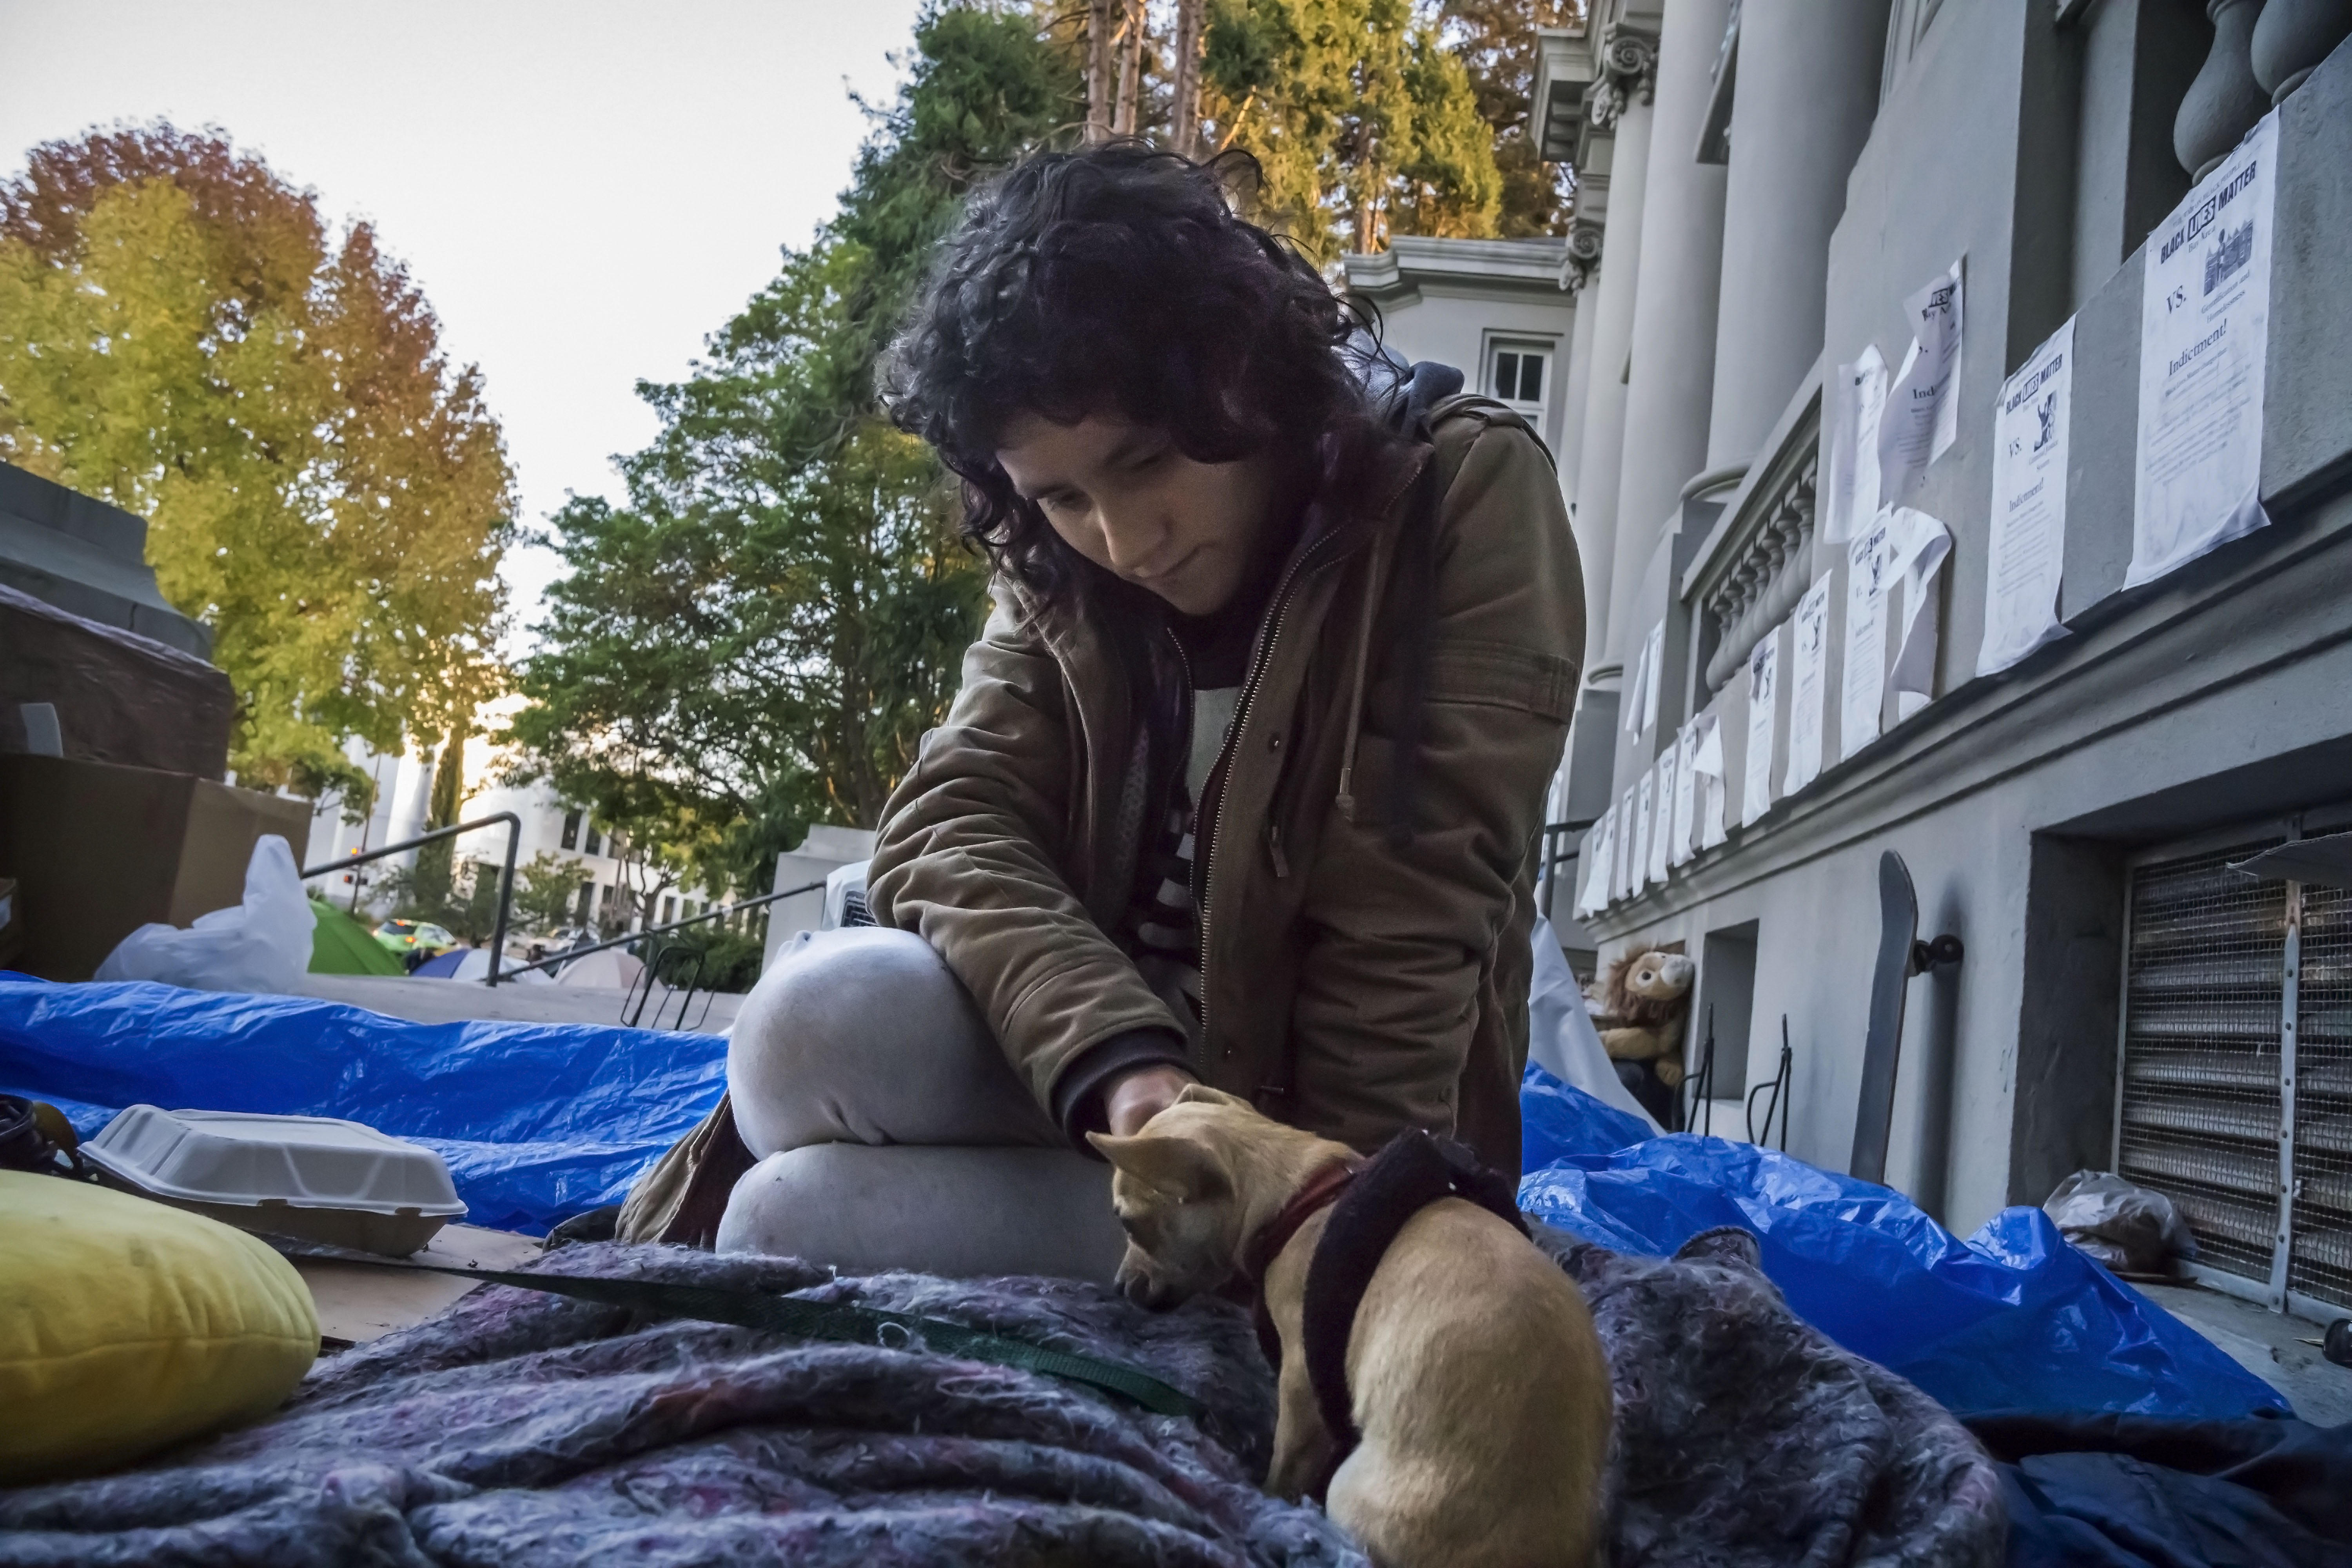 BERKELEY, CA - 24NOVEMBER15 - The camp outside the old Berkeley City Hall, called by the residents an occupation.  It is a protest against the Berkeley City Council passing an anti-homeless ordinance.  Copyright David Bacon